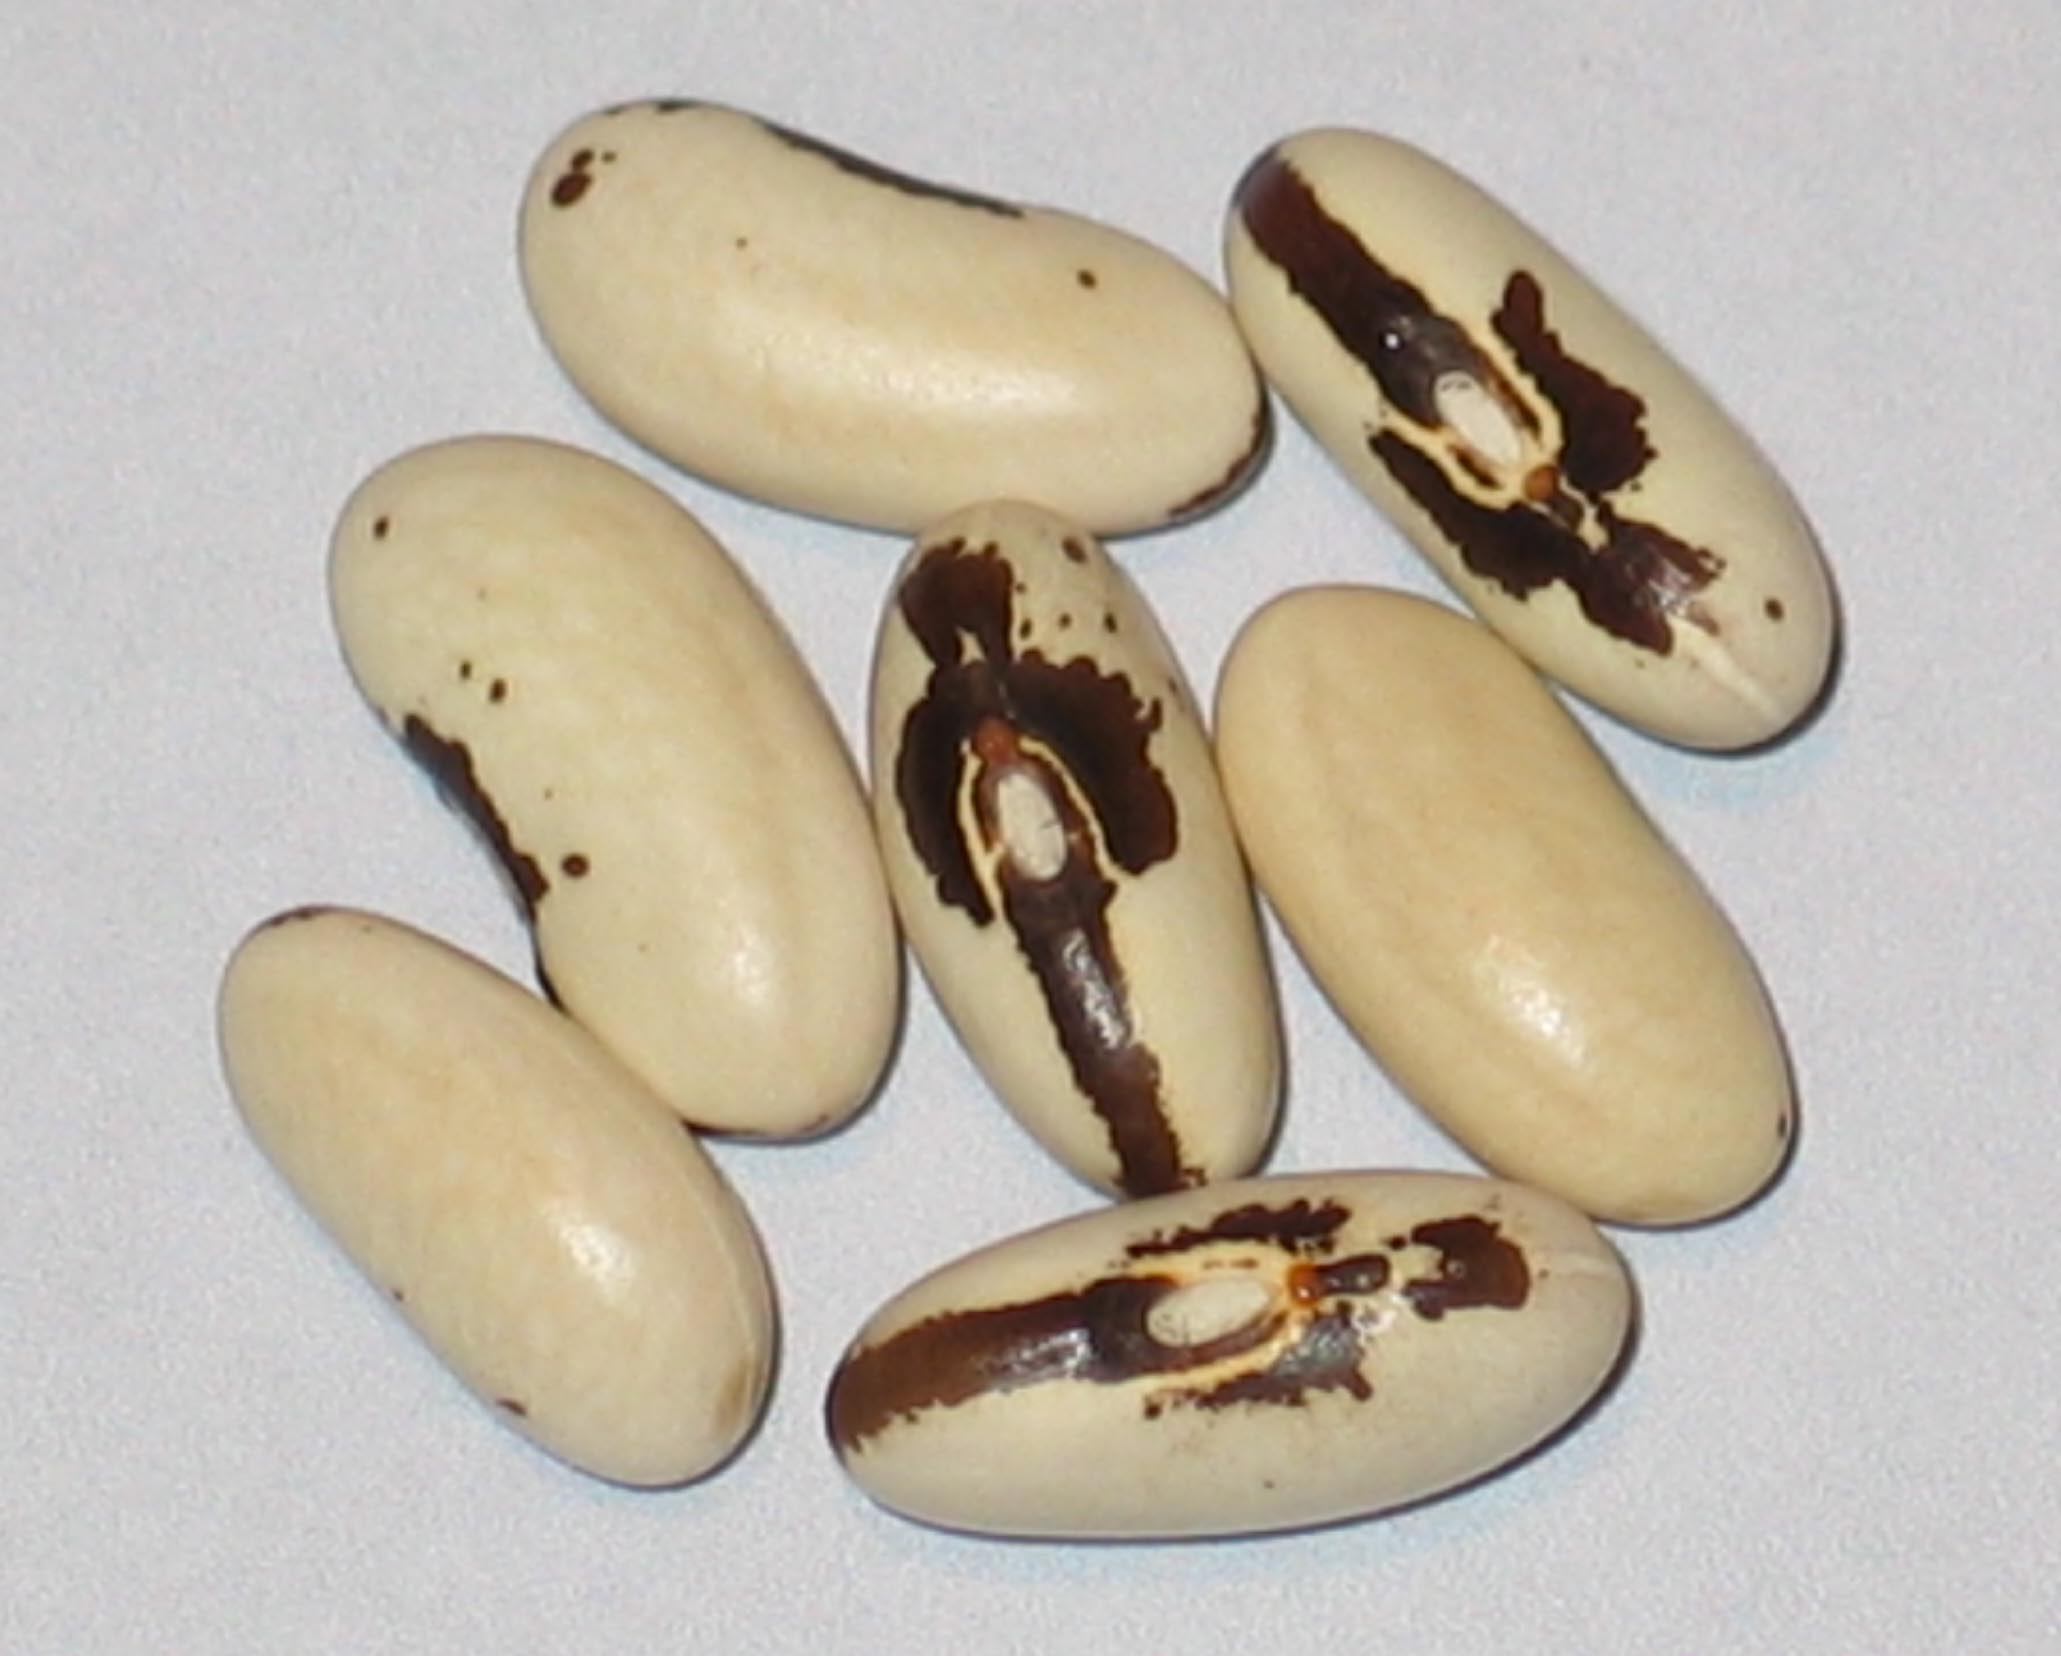 image of Lavender beans